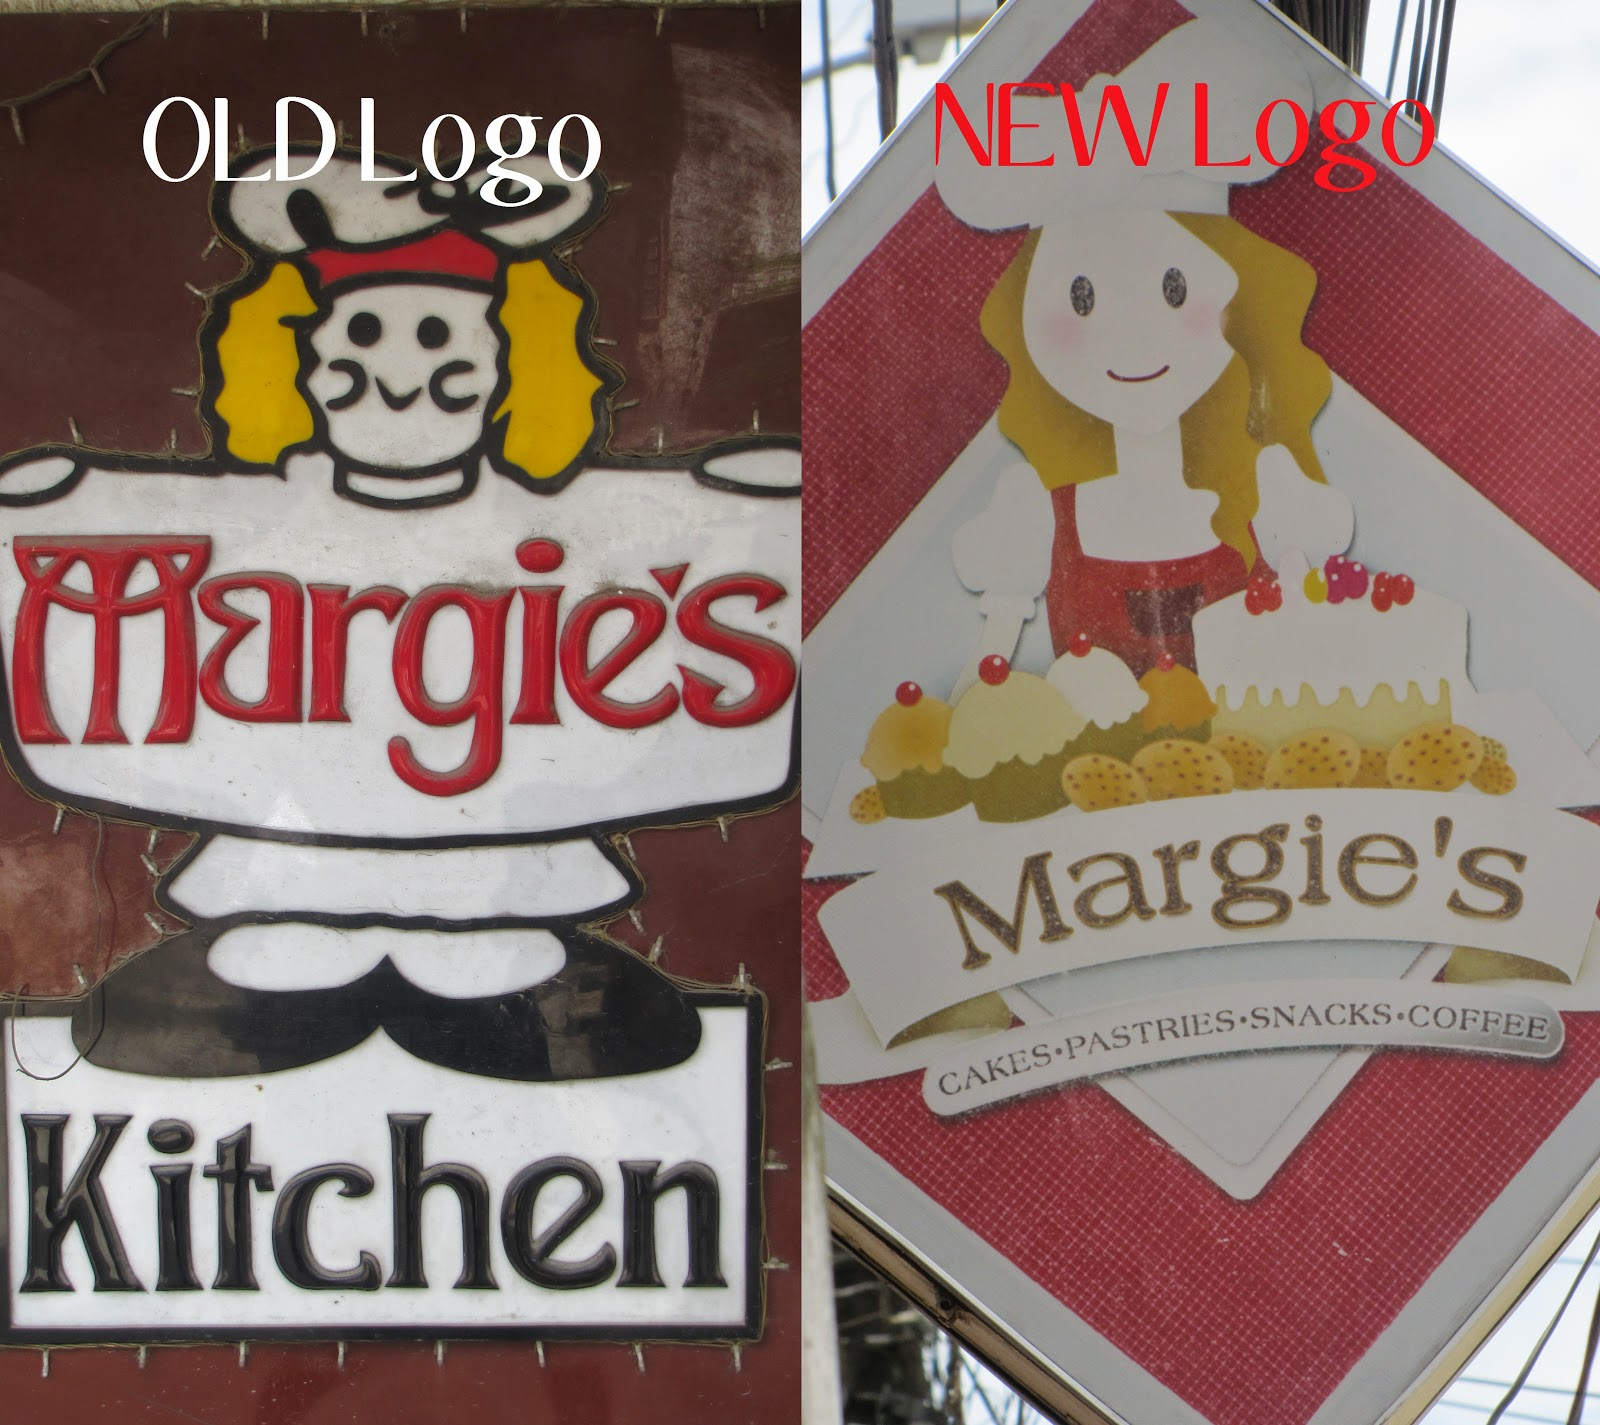 FTW! Blog, Margie's Kitchen Old Logo vs New Logo, Margie's Kitchen Butuan, Butuan City, #085eatdrink